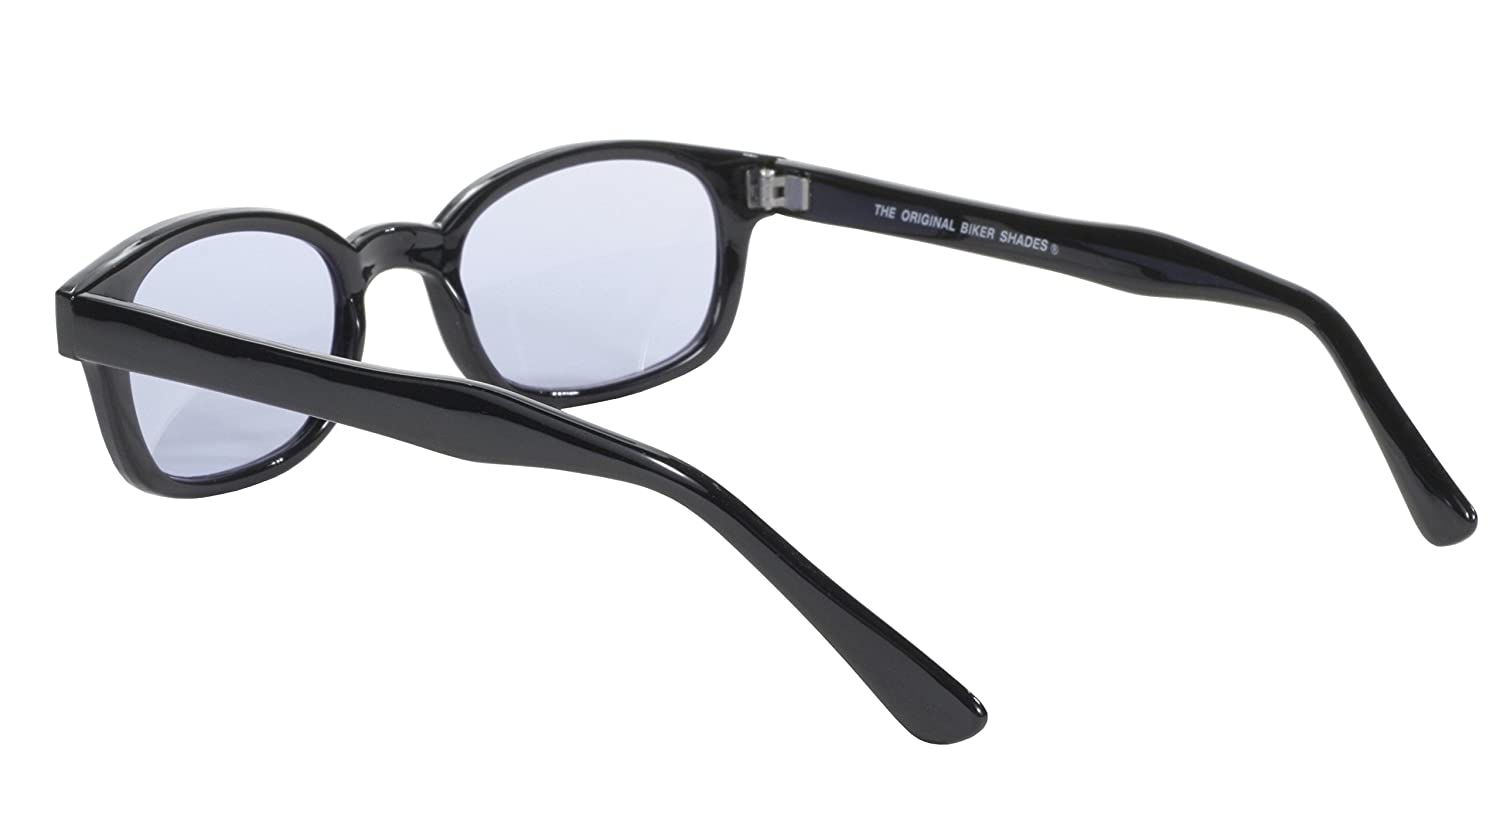 Pacific Coast Sunglasses 2010 Black Frame//Smoke Lens Pacific Coast Original KDs Biker Sunglasses